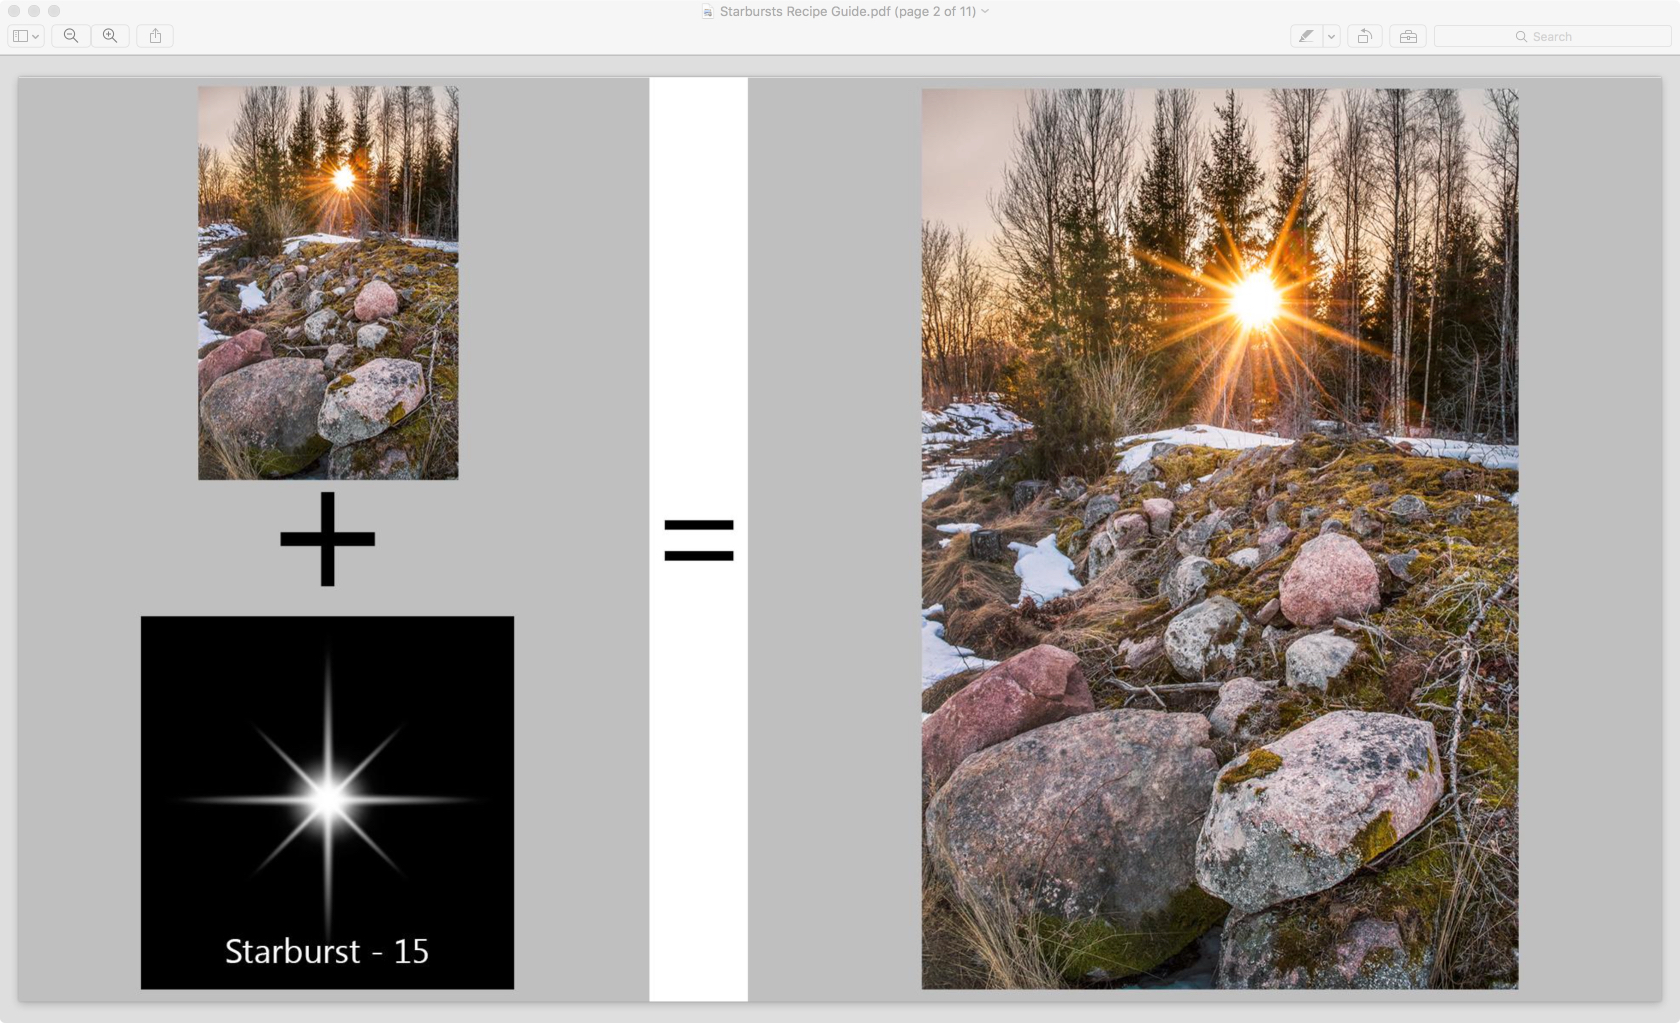 included sample image with overlay